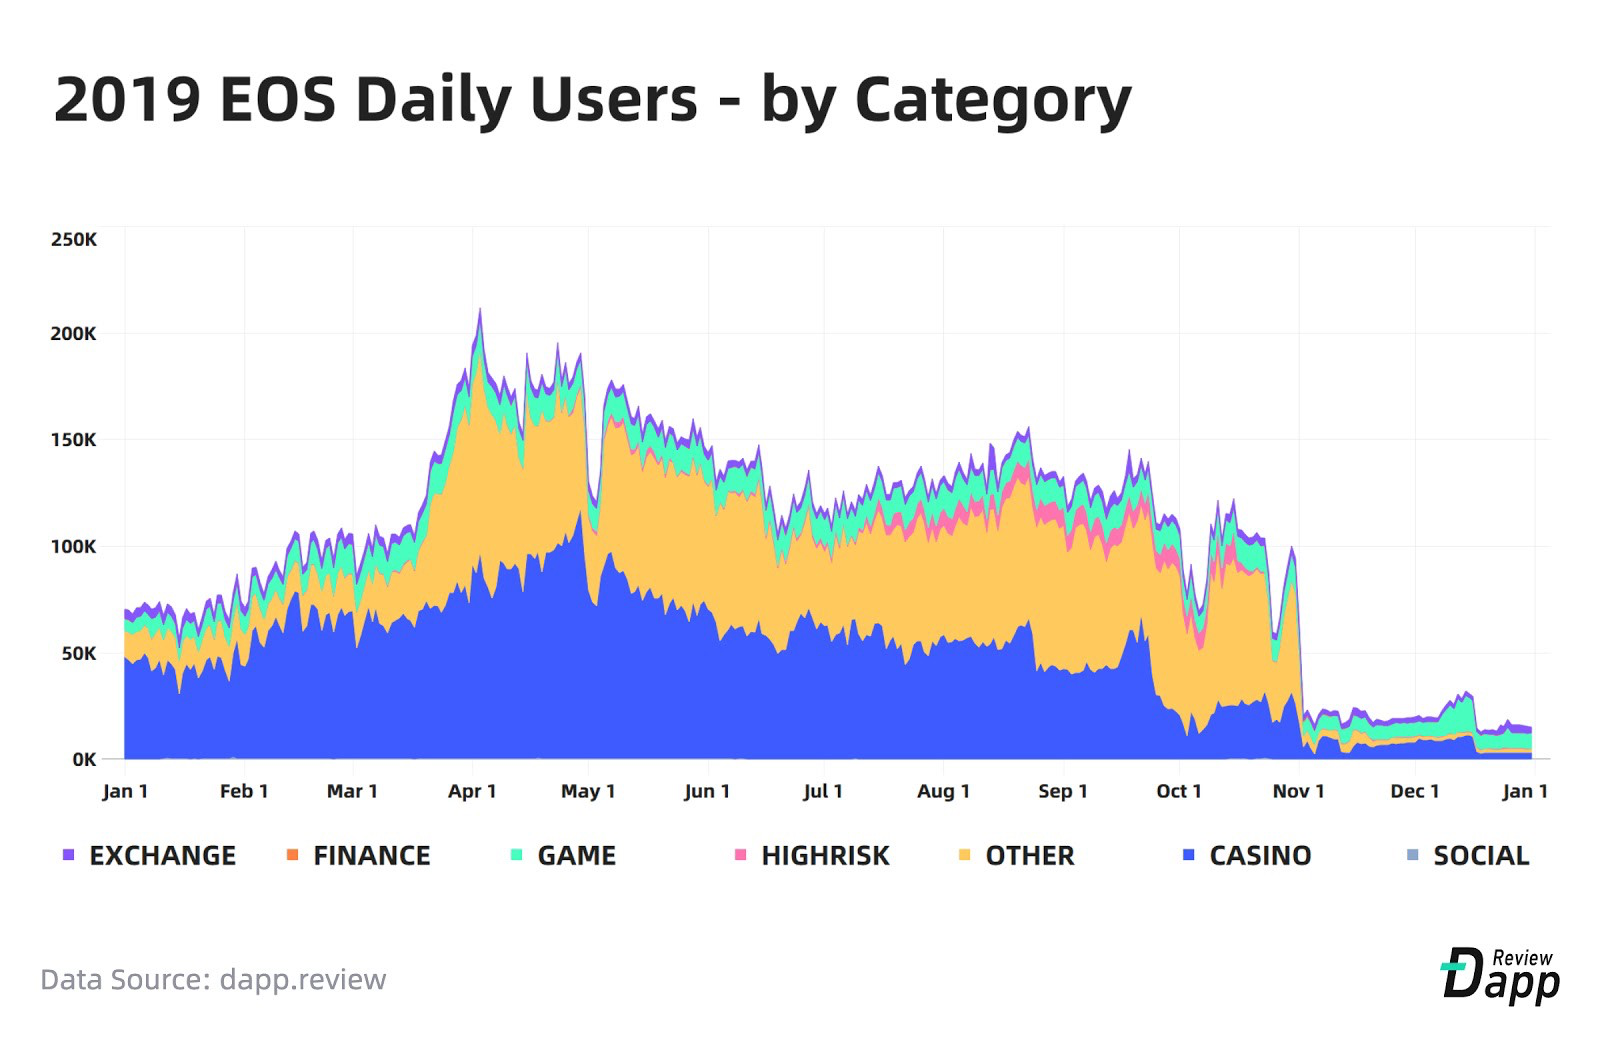 2019 EOS Daily Users